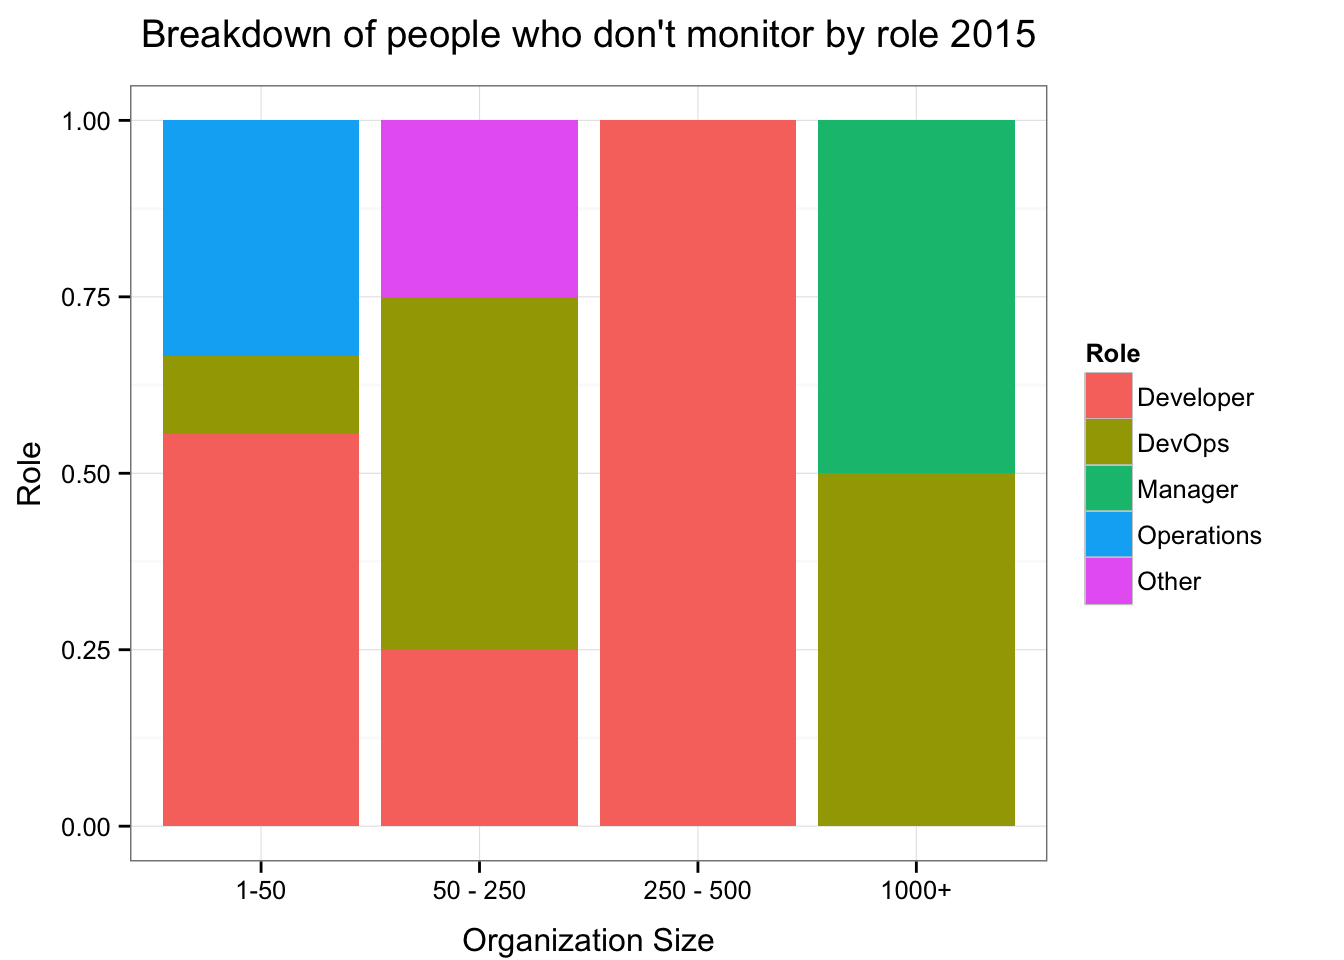 Roles who don't monitor by size